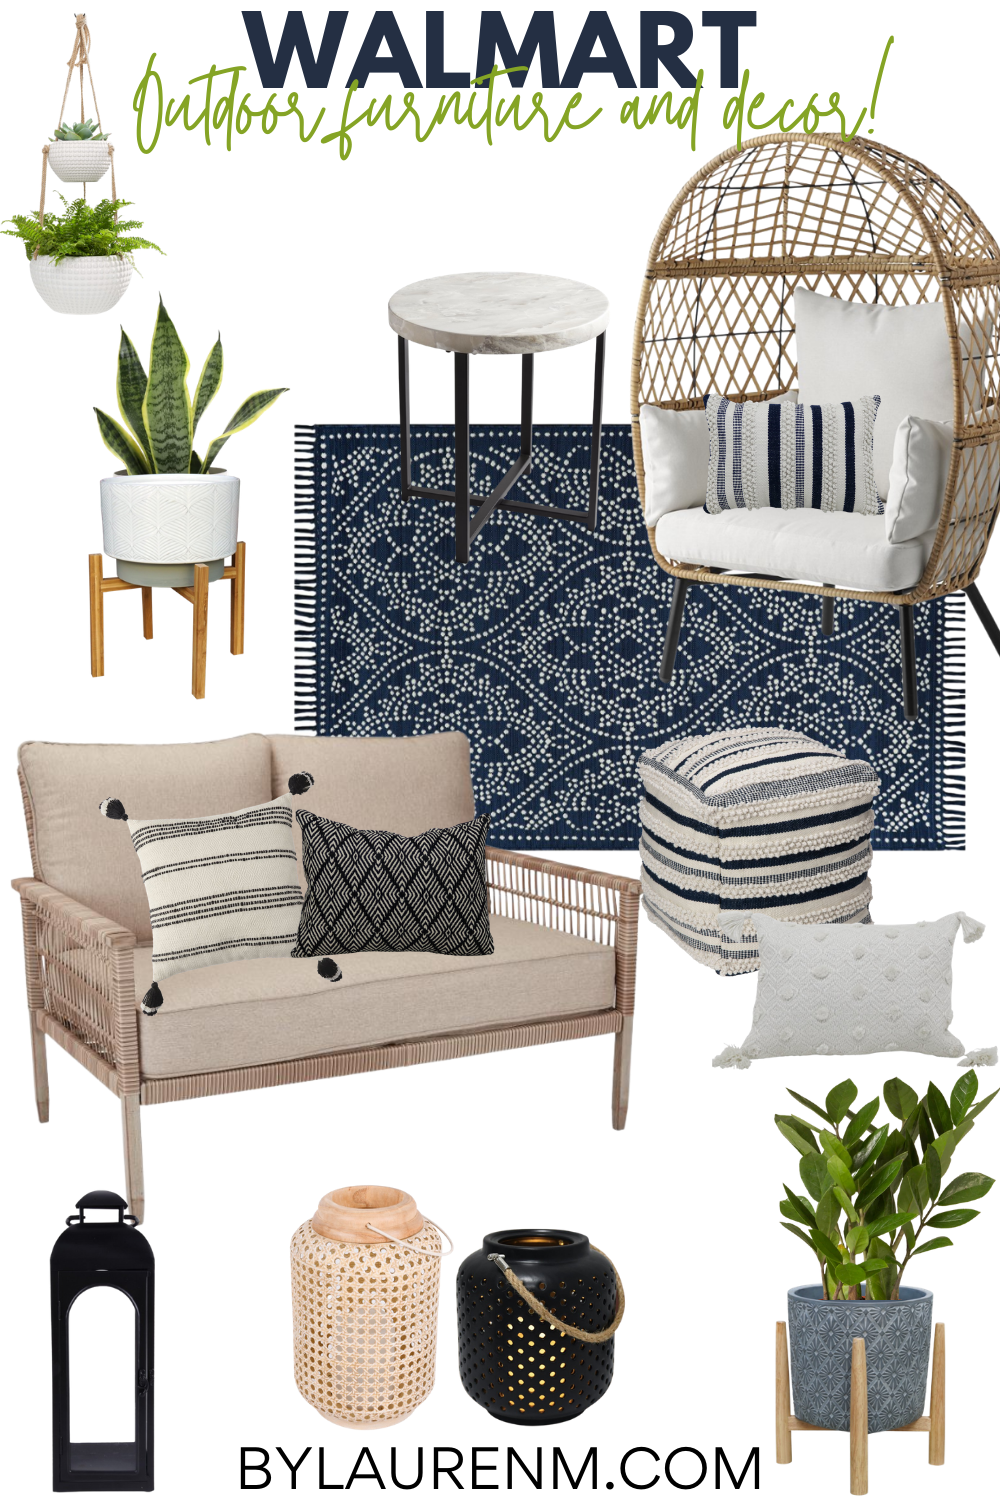 Virginia home blogger, Lauren Dix, shares fifteen of her favorite Walmart outdoor furniture and home decor finds! Get ready to design your perfect outdoor space with this affordable patio furniture!